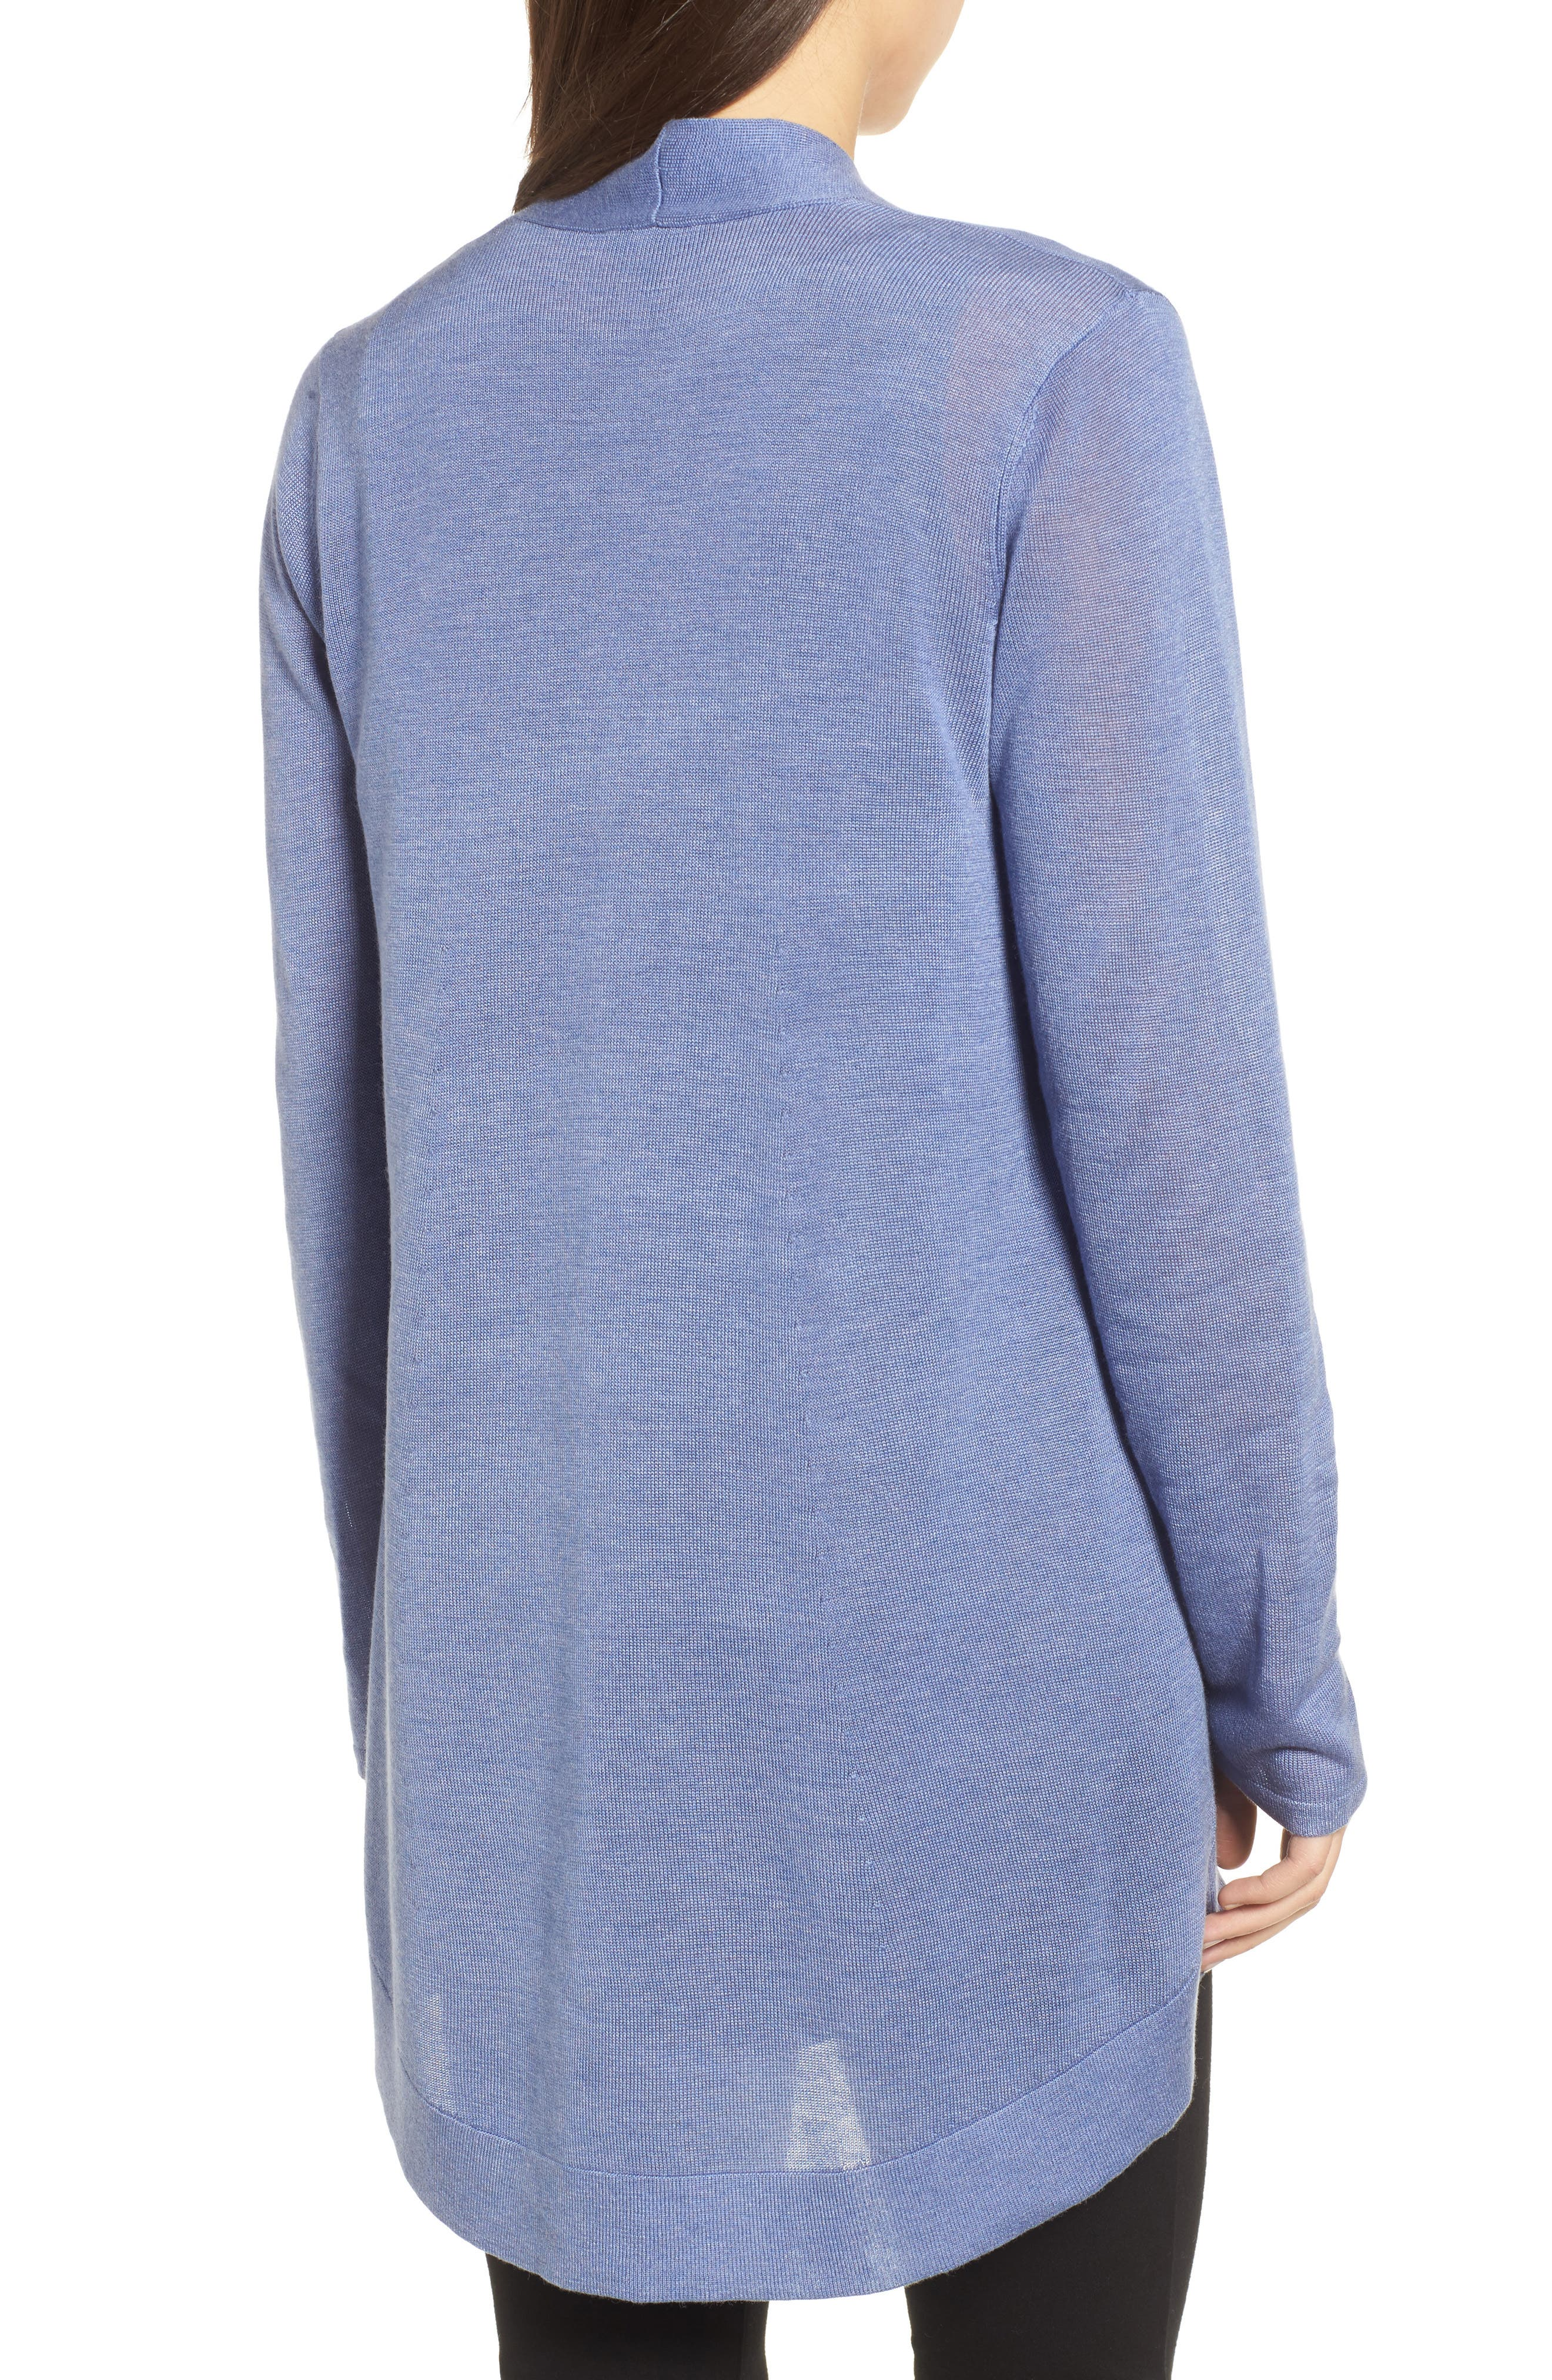 Tencel<sup>®</sup> Lyocell & Merino Wool Shaped Cardigan,                             Alternate thumbnail 2, color,                             Periwinkle